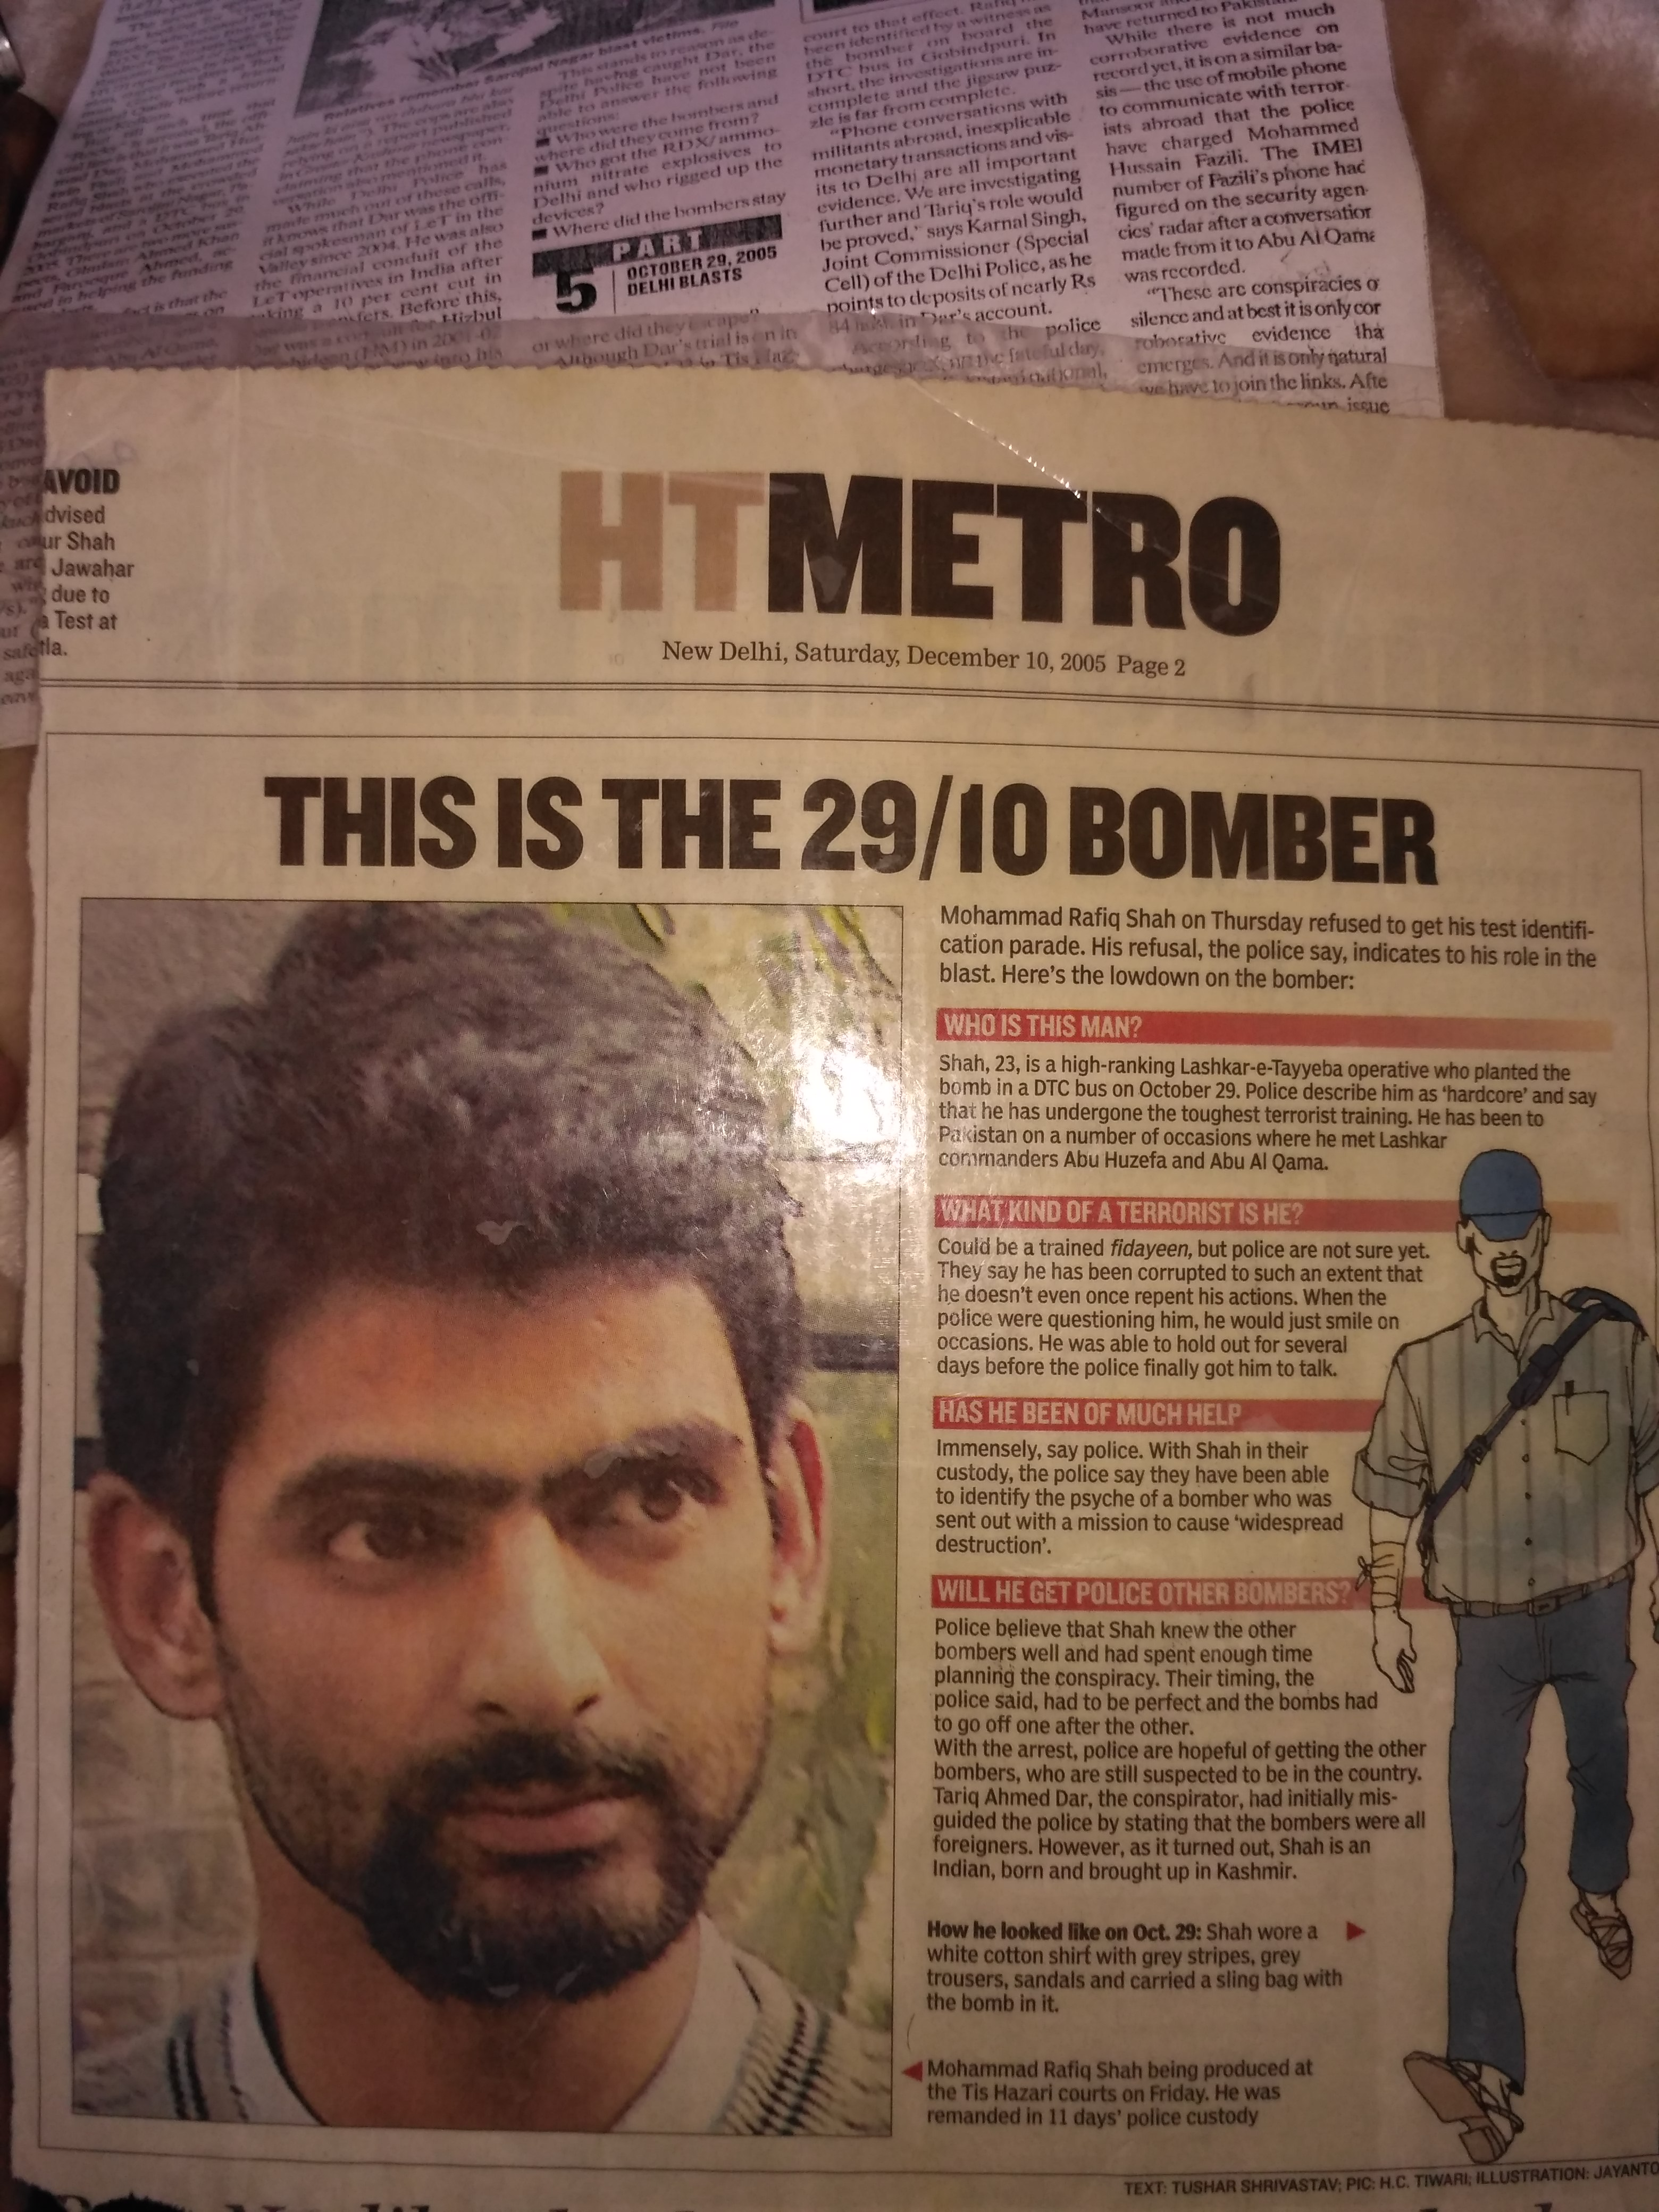 Clipping of a tendentious Hindustan Times story